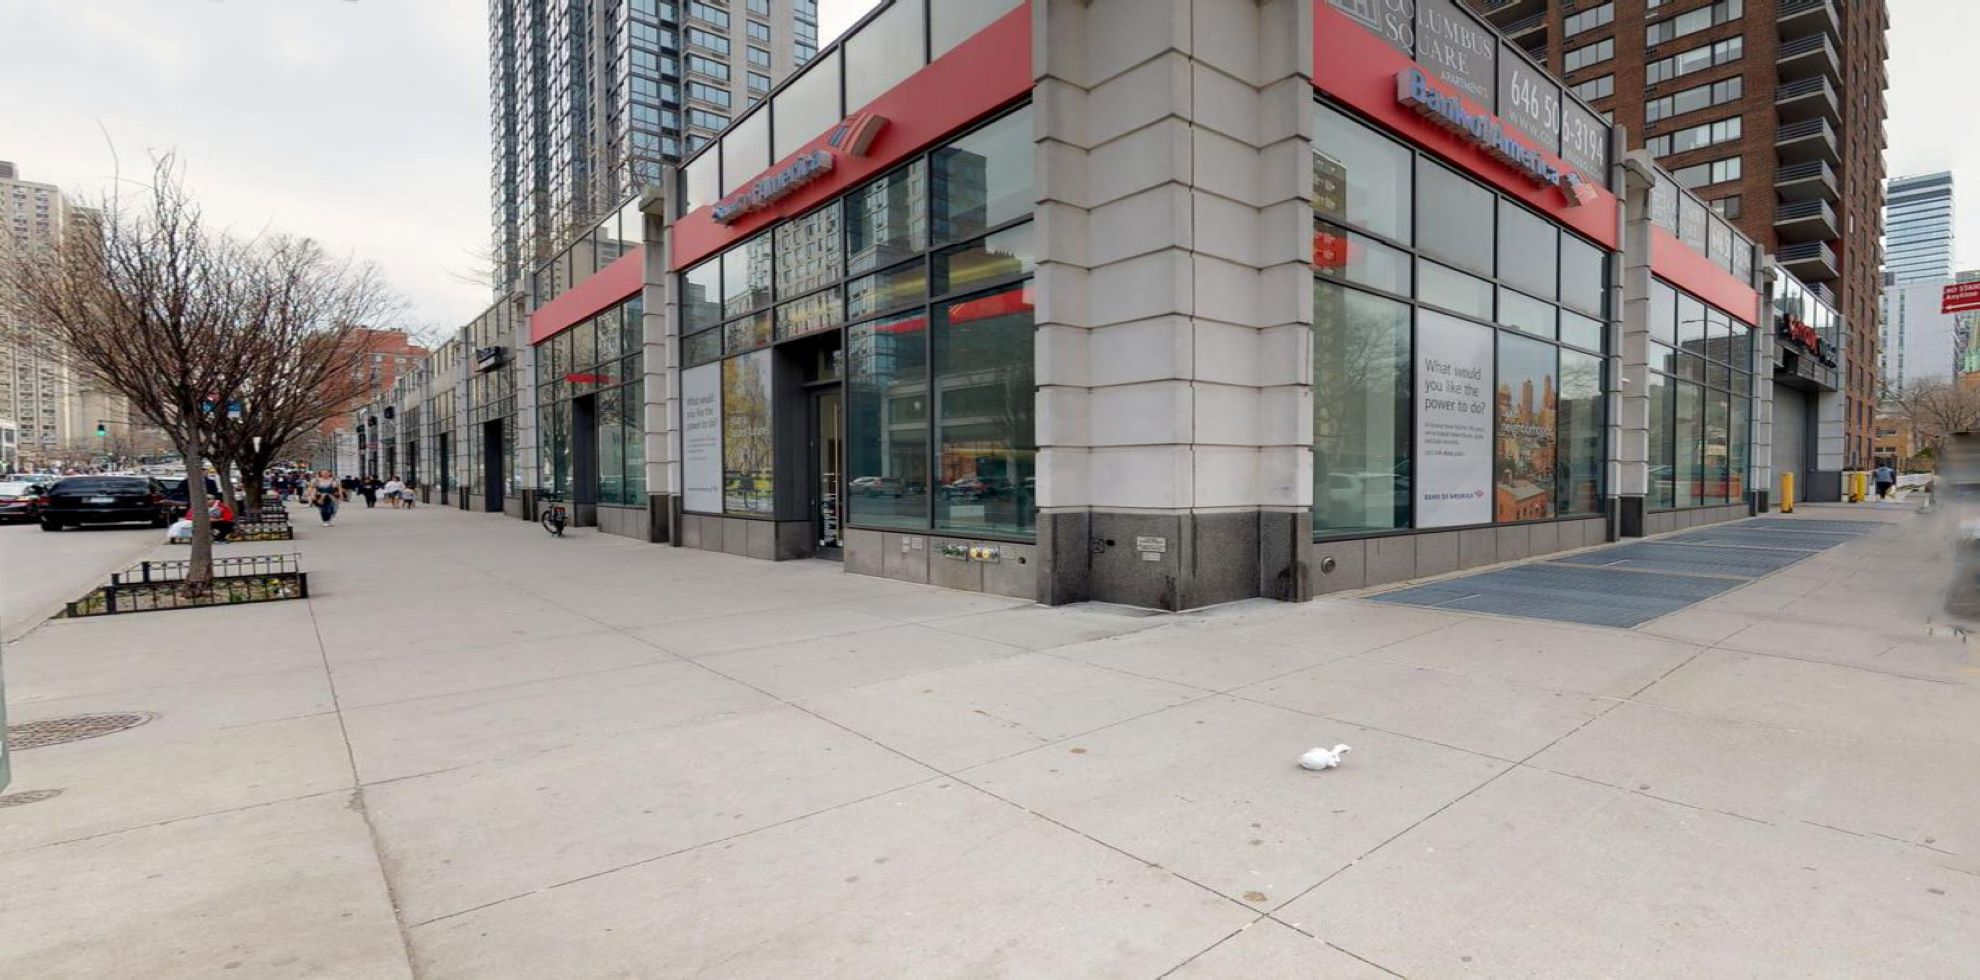 Bank of America financial center with walk-up ATM | 808 Columbus Ave, New York, NY 10025